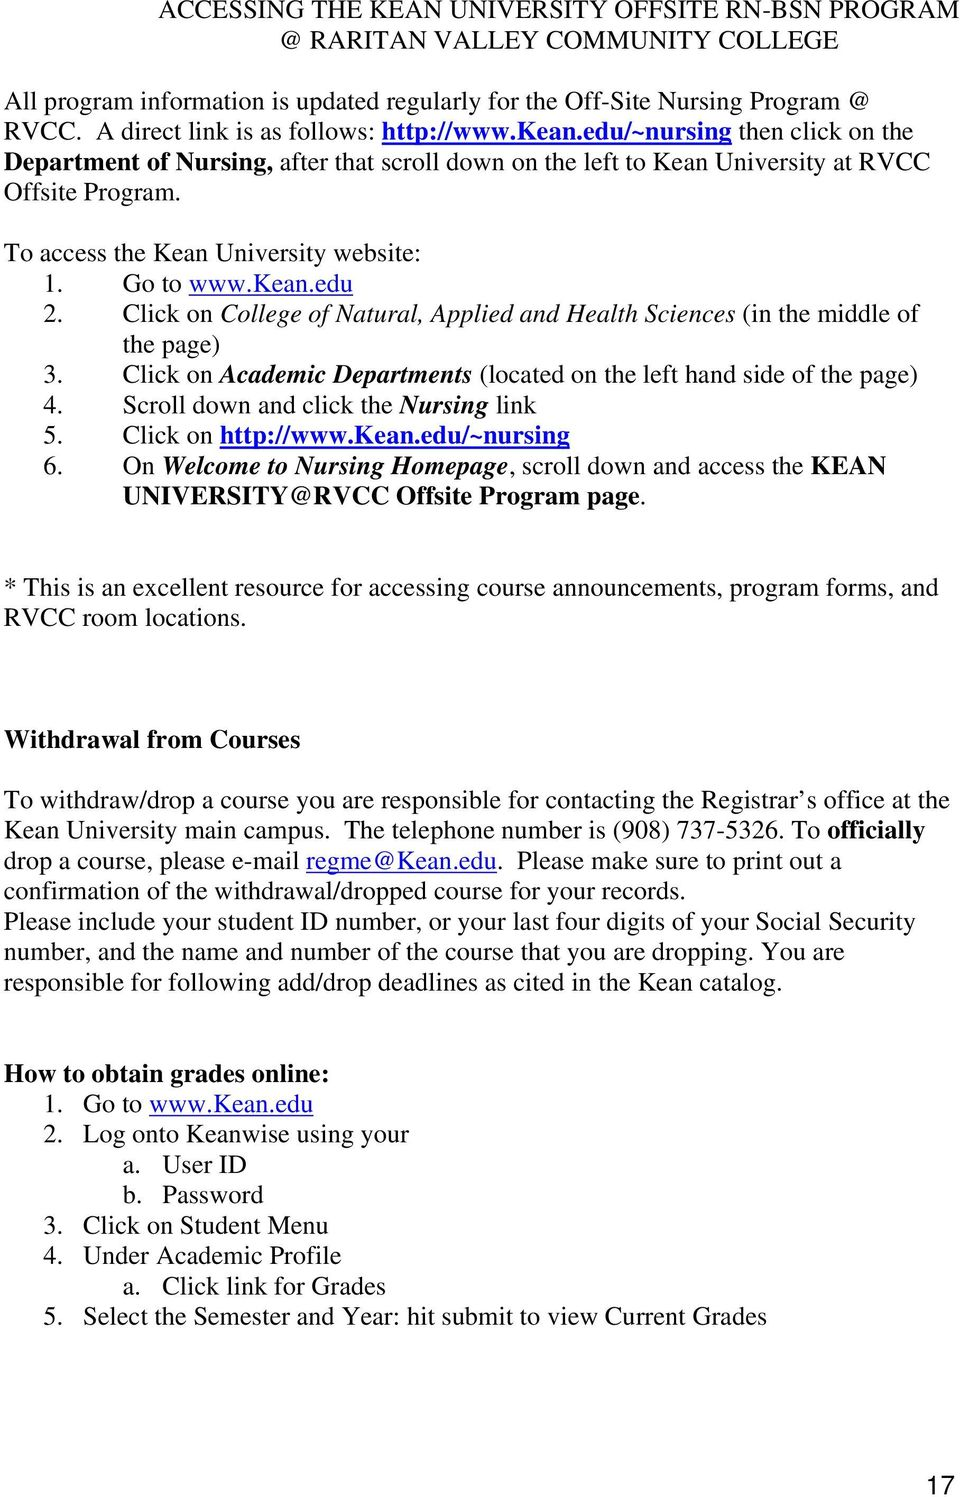 To access the Kean University website: 1. Go to www.kean.edu 2. Click on College of Natural, Applied and Health Sciences (in the middle of the page) 3.